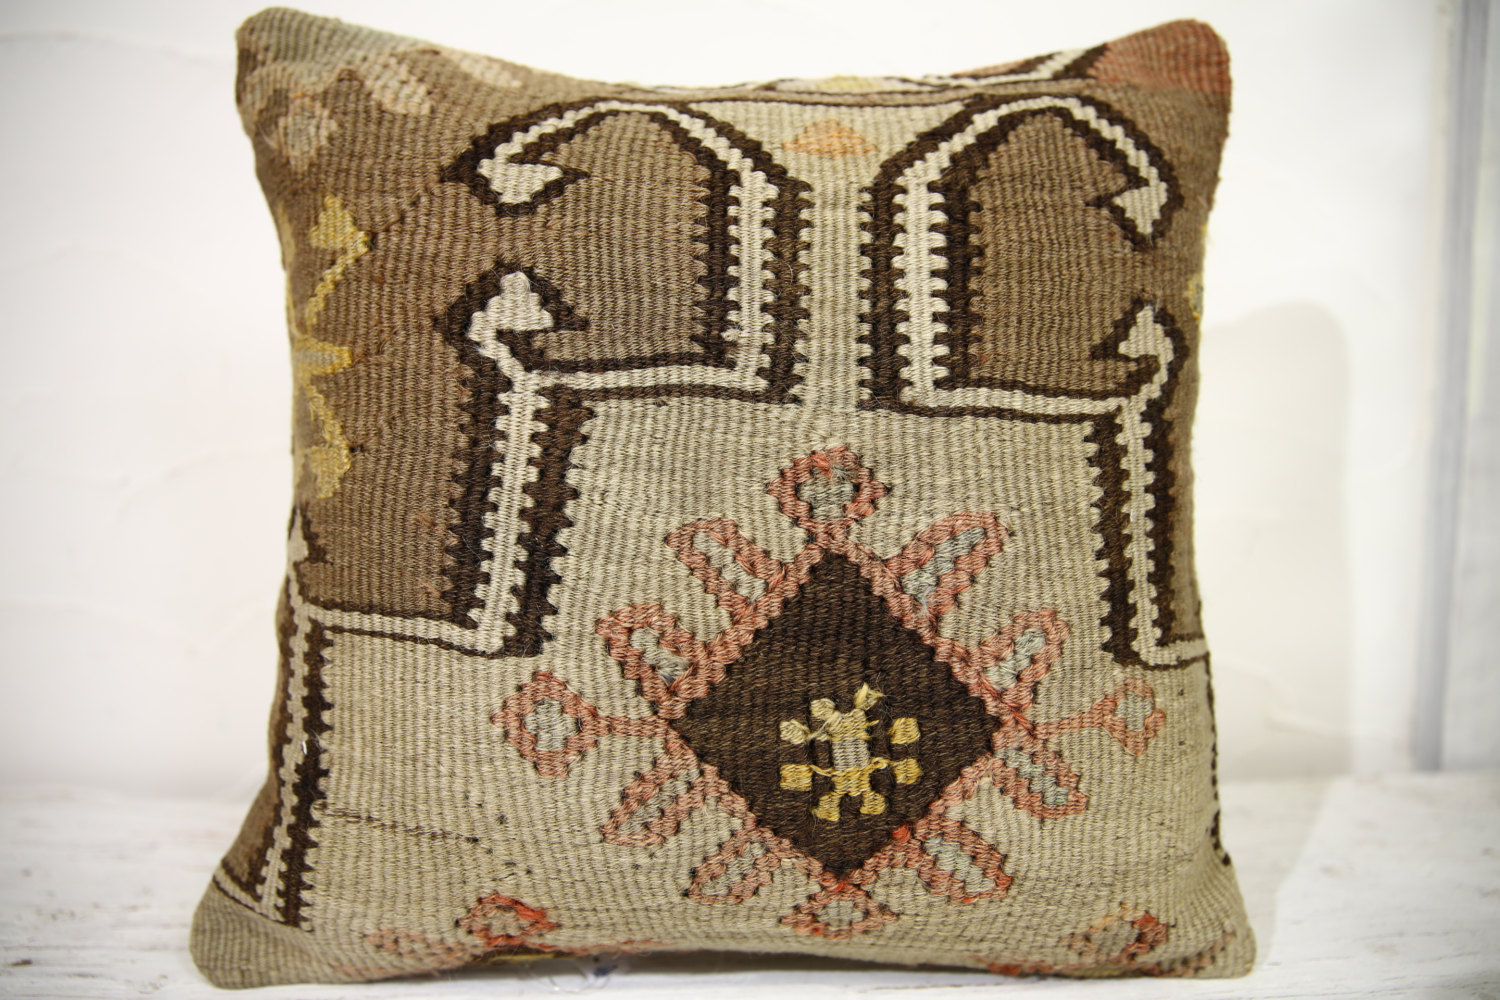 Kilim Pillows | 16x16 | Decorative Pillows | 941 | Accent Pillows,turkish pillow